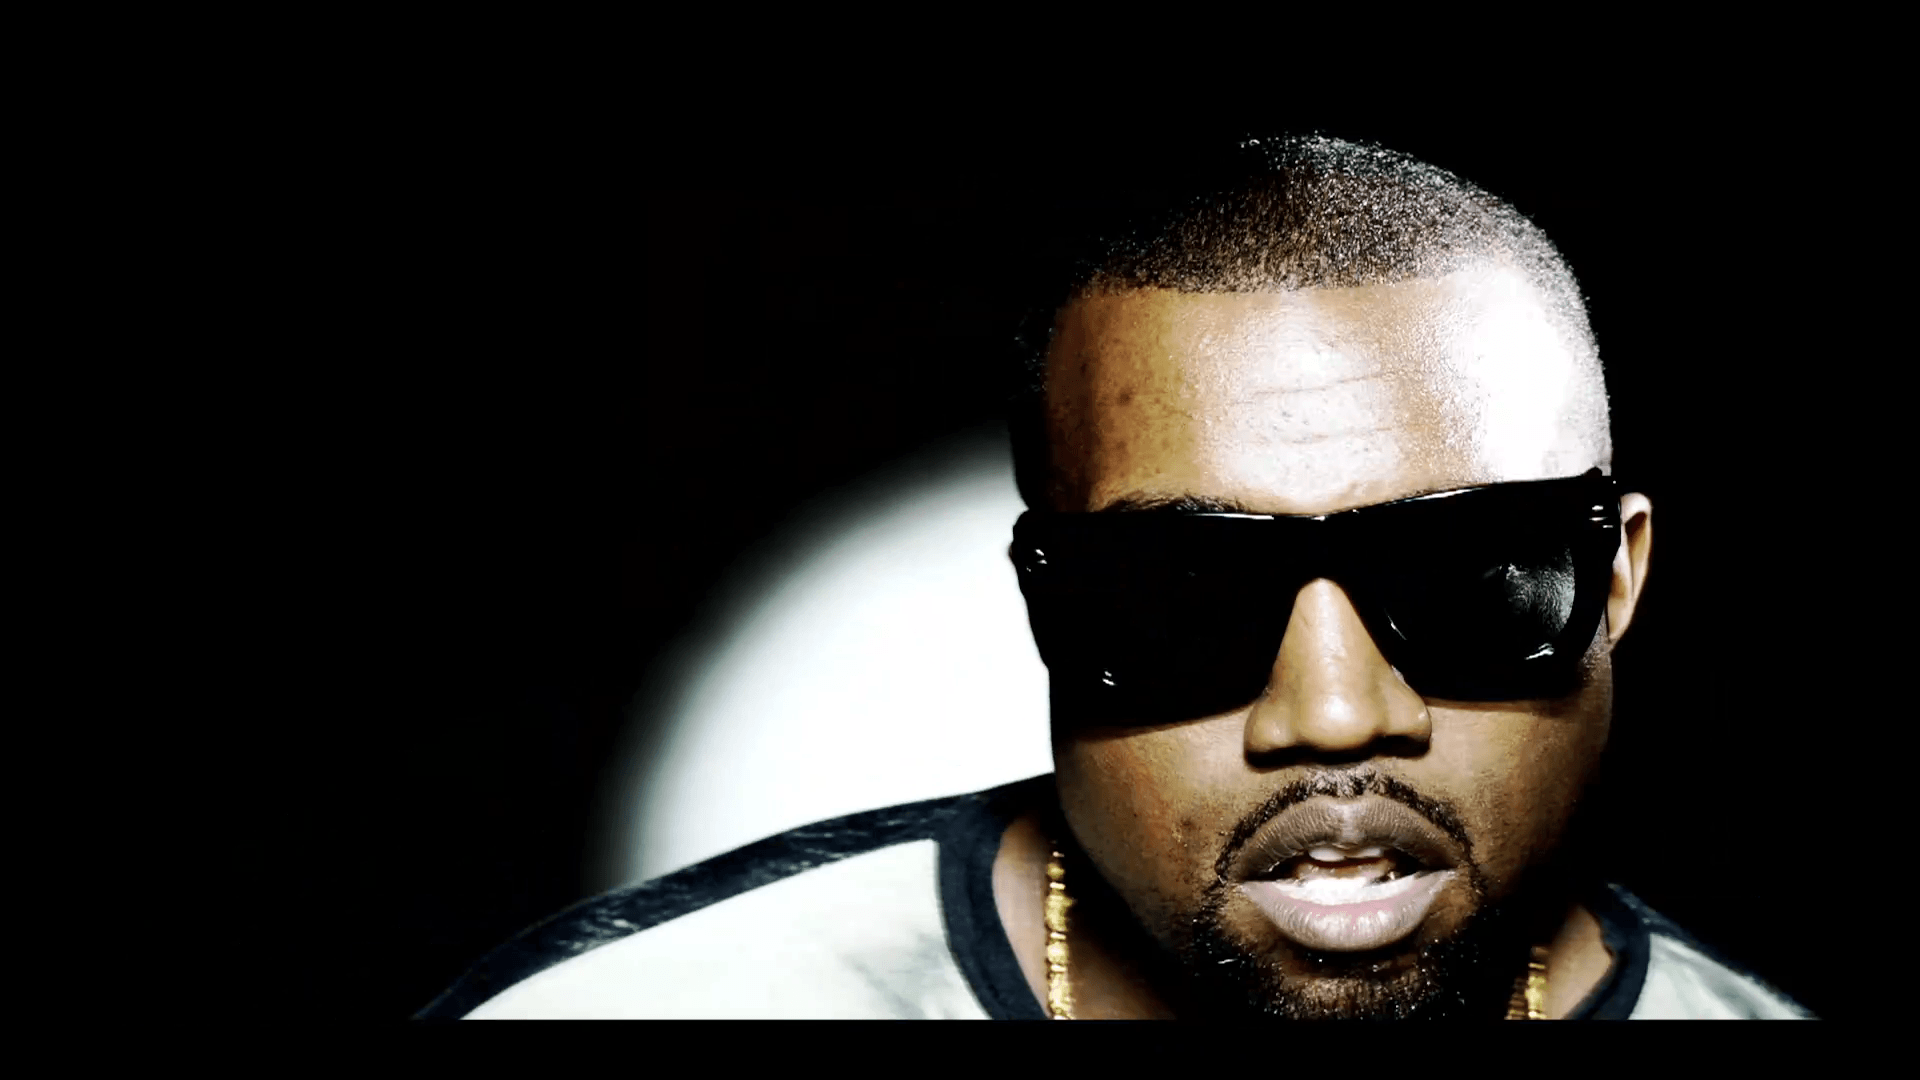 Kanye West Late Registration Album Cover Wallpaper